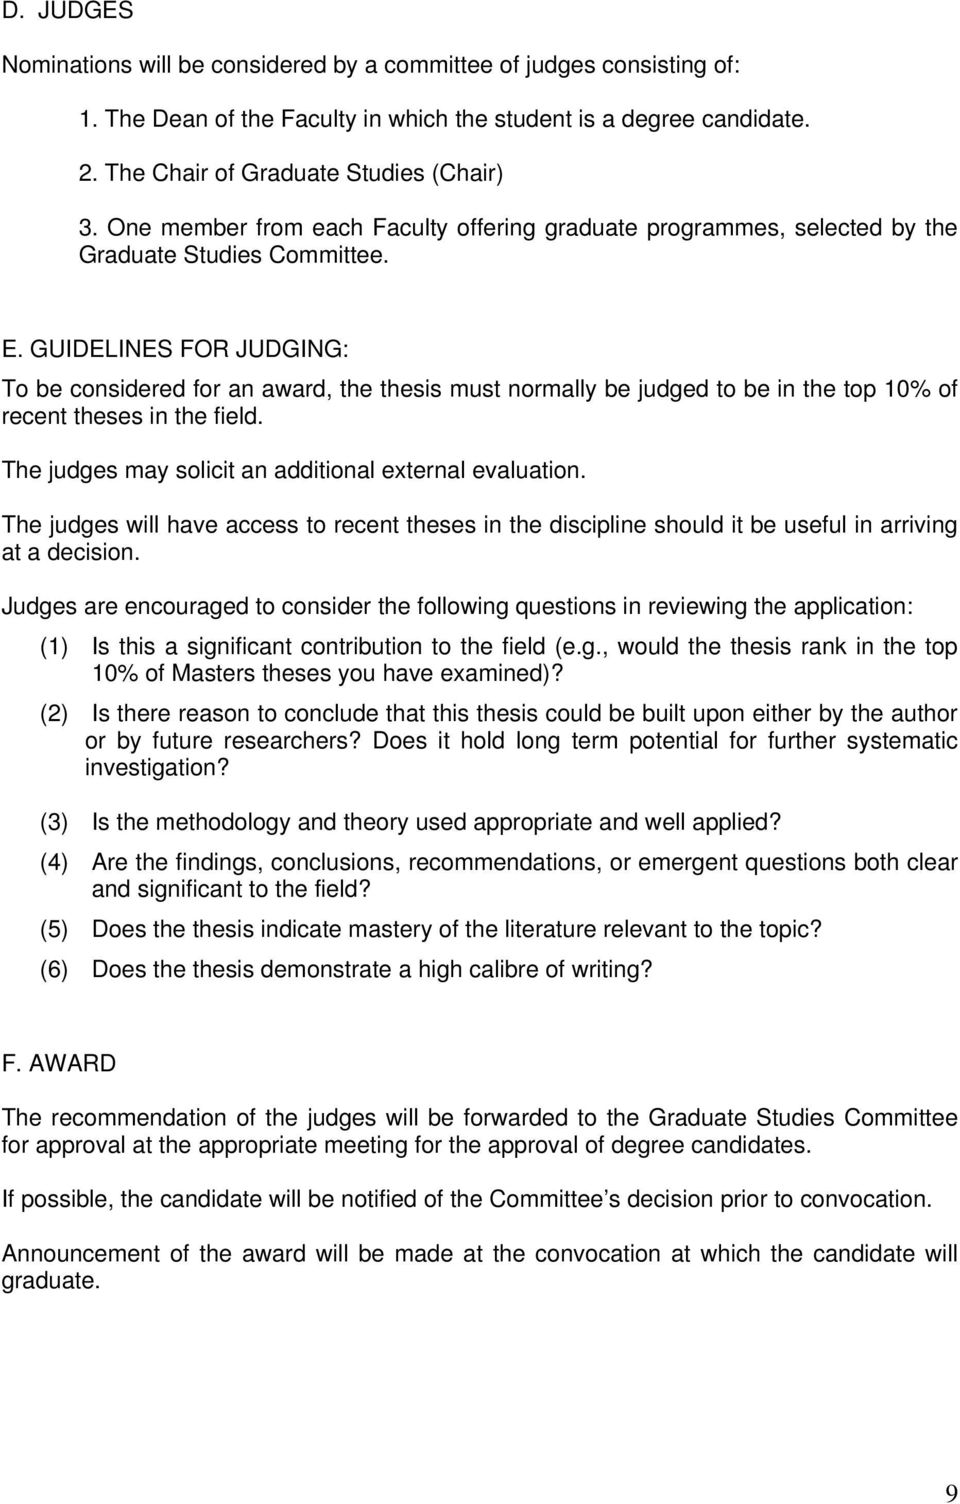 GUIDELINES FOR JUDGING: To be considered for an award, the thesis must normally be judged to be in the top 10% of recent theses in the field. The judges may solicit an additional external evaluation.